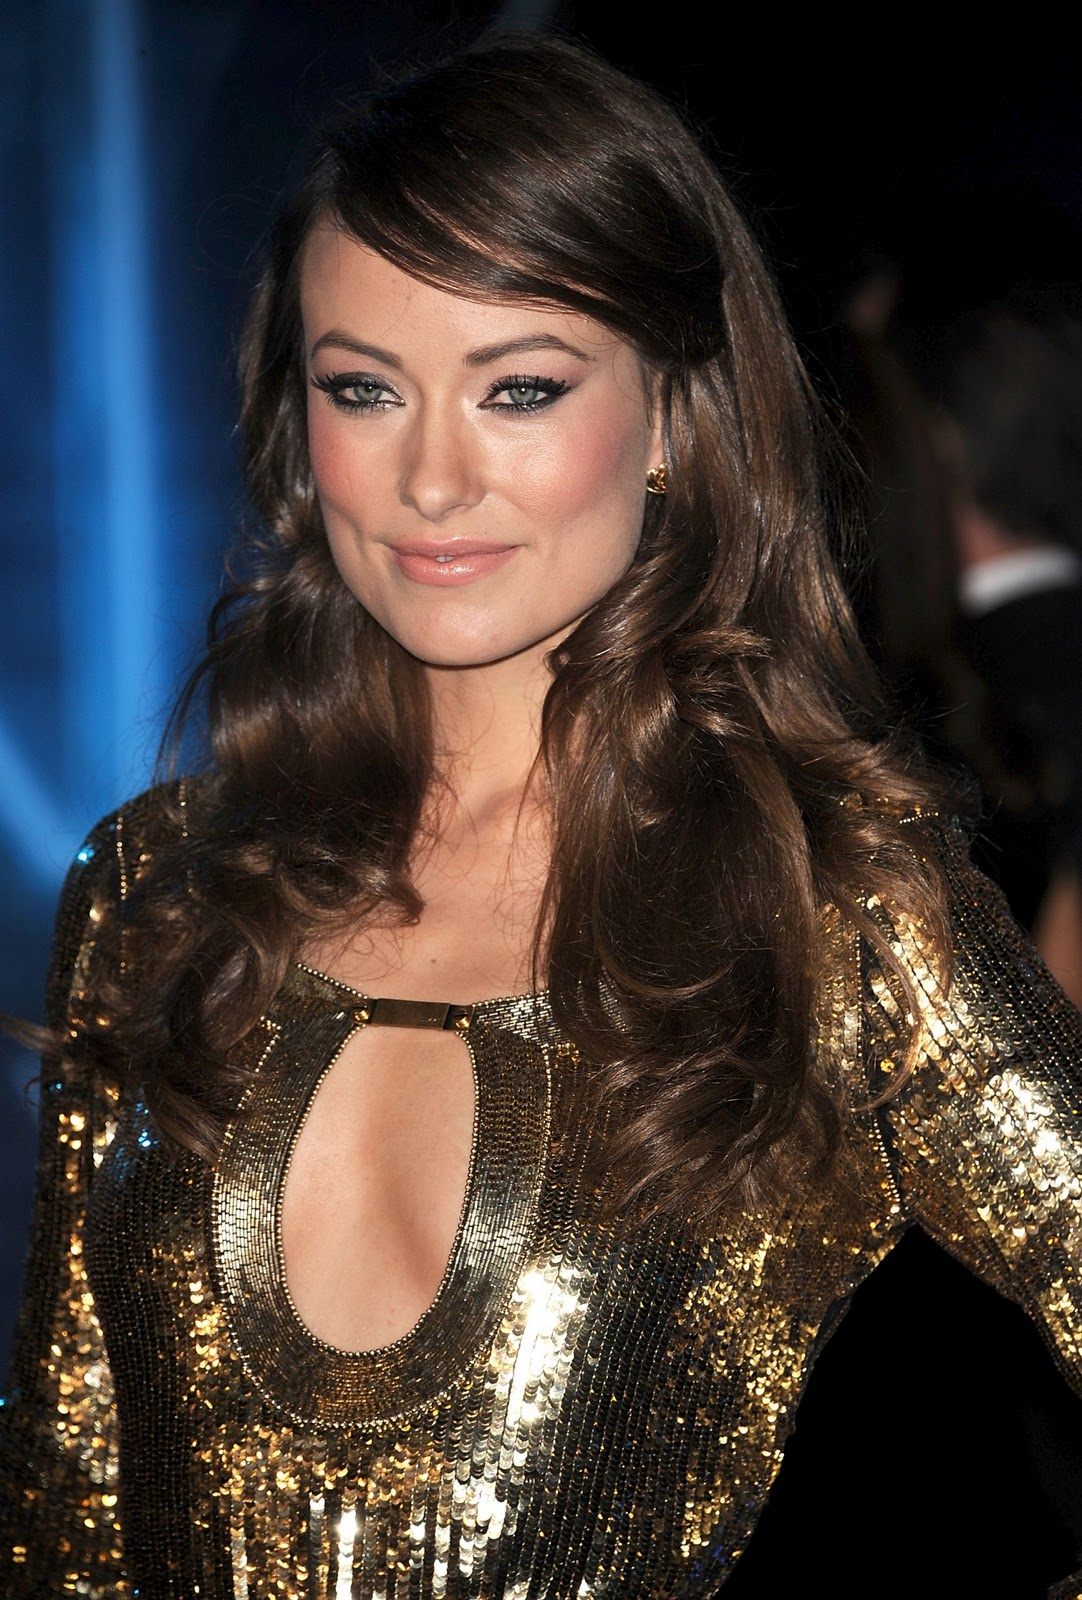 Olivia Wilde Profile And New Pictures 2013: FunCruiser-The Sexy Babes Gallery !!!: Olivia Wilde